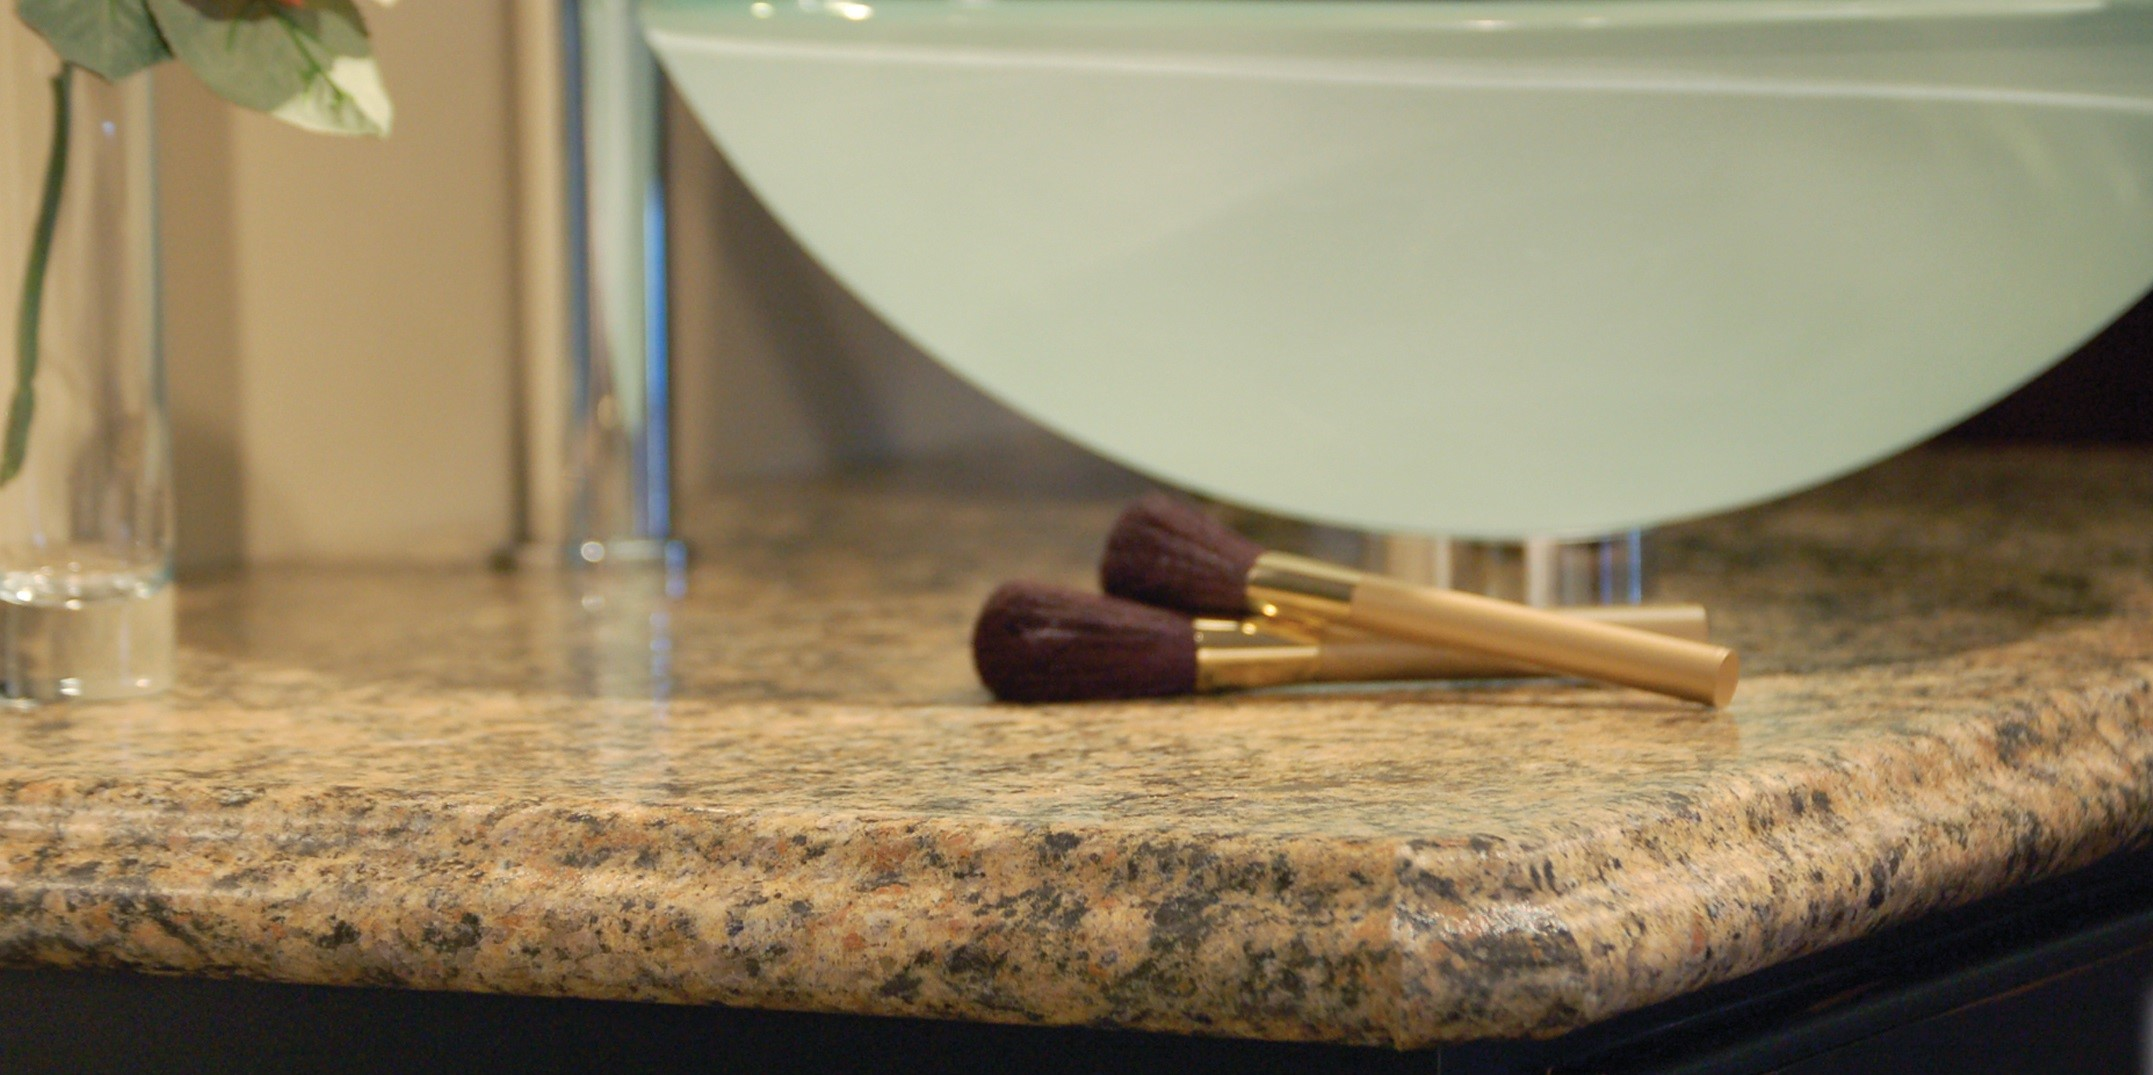 Countertop with makeup brushes